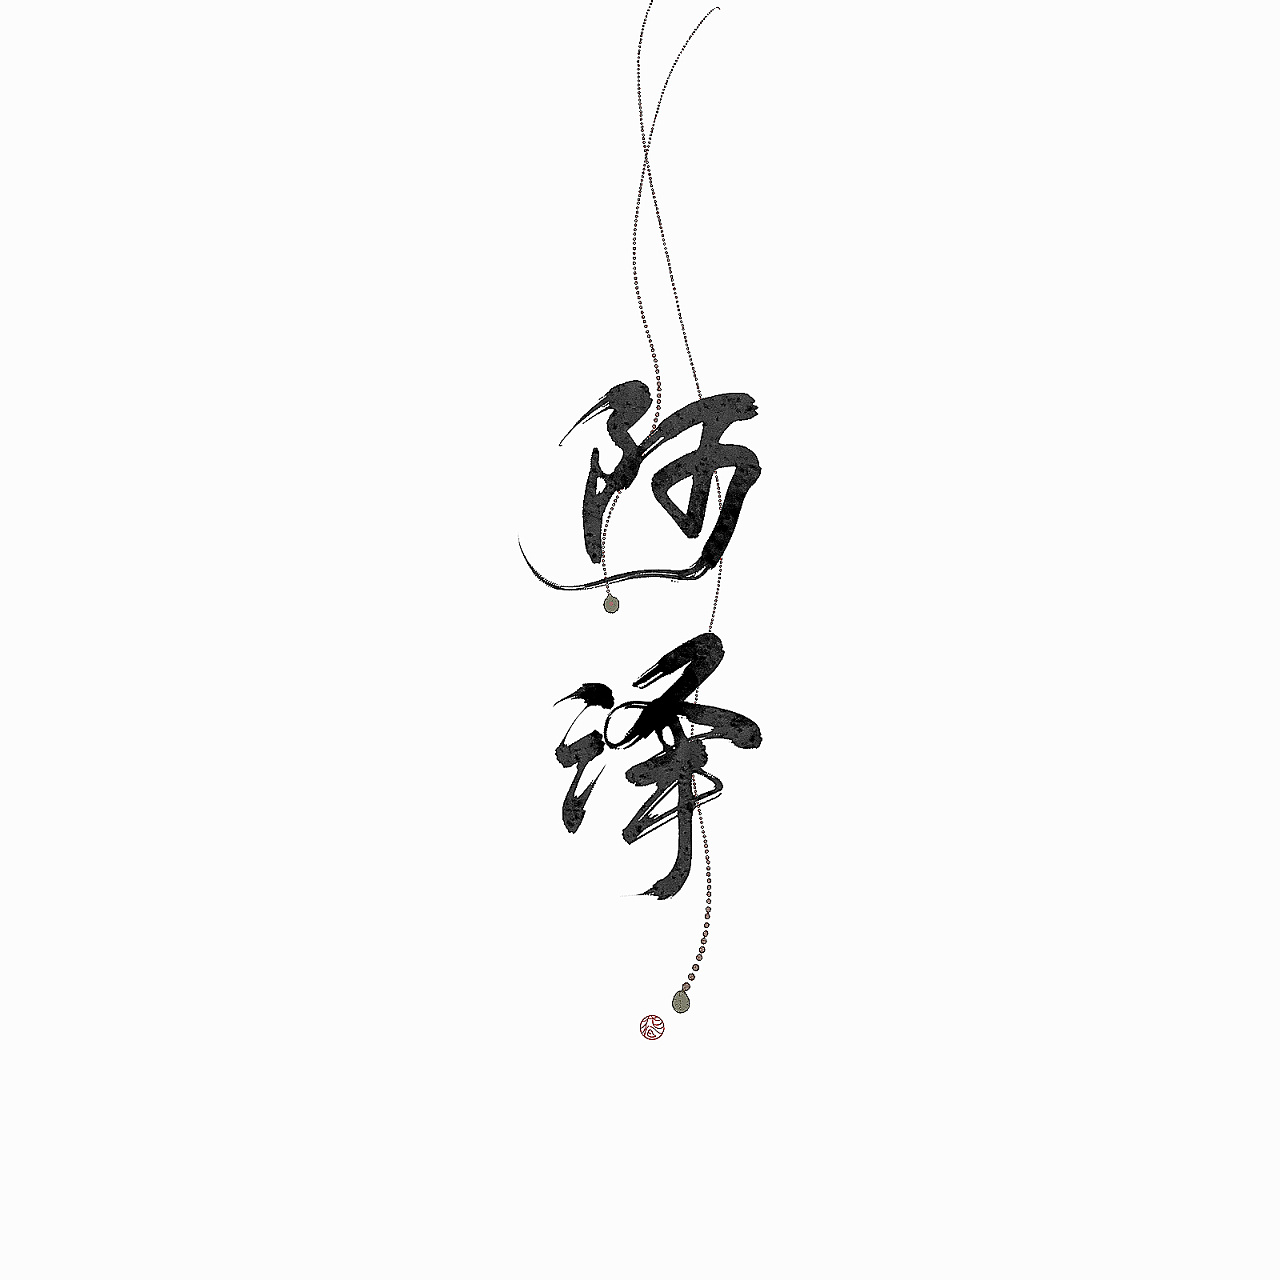 9P Chinese traditional calligraphy brush calligraphy font style appreciation #.263